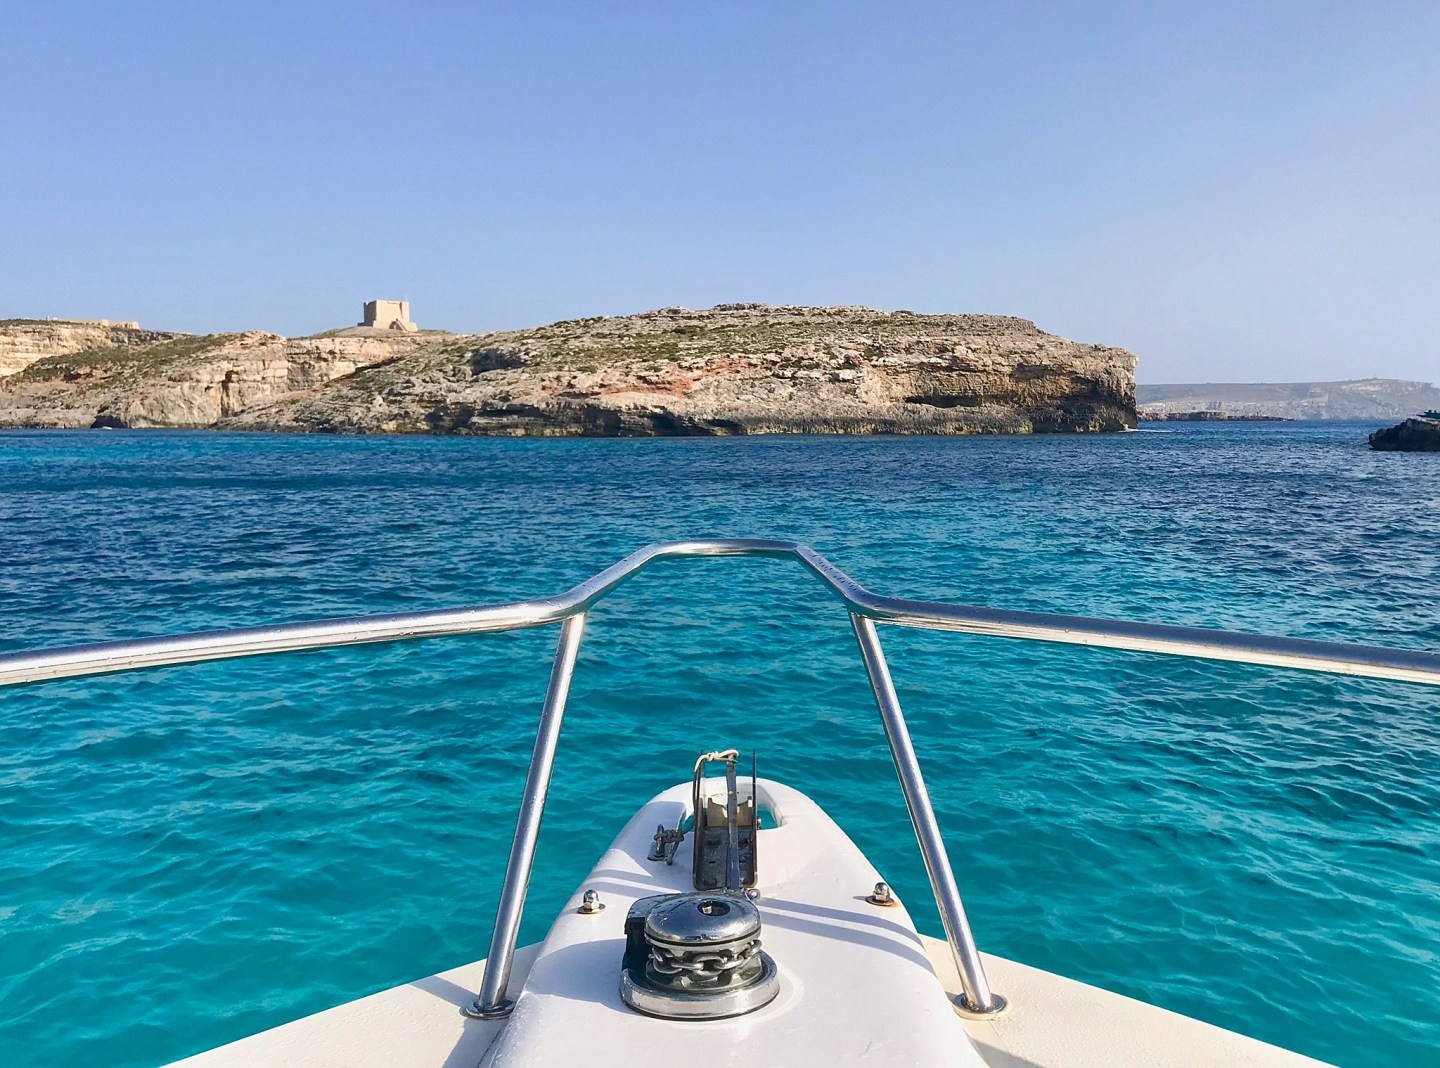 Travel Guide to Malta, Gozo and Comino